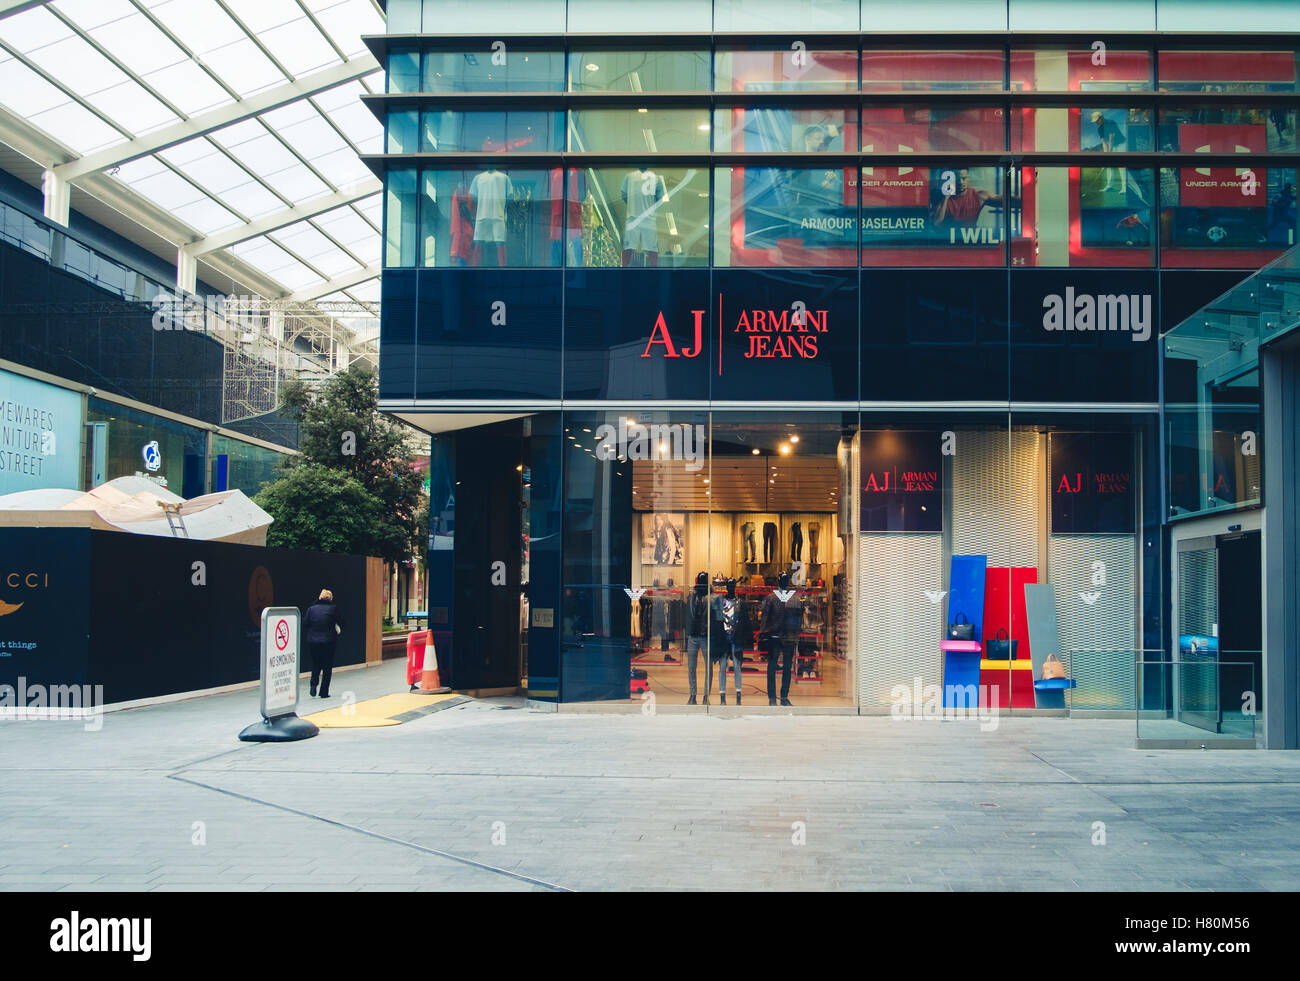 fe60a9c05e Armani Jeans designer goods store in Westfield Stratford, East Stock ...